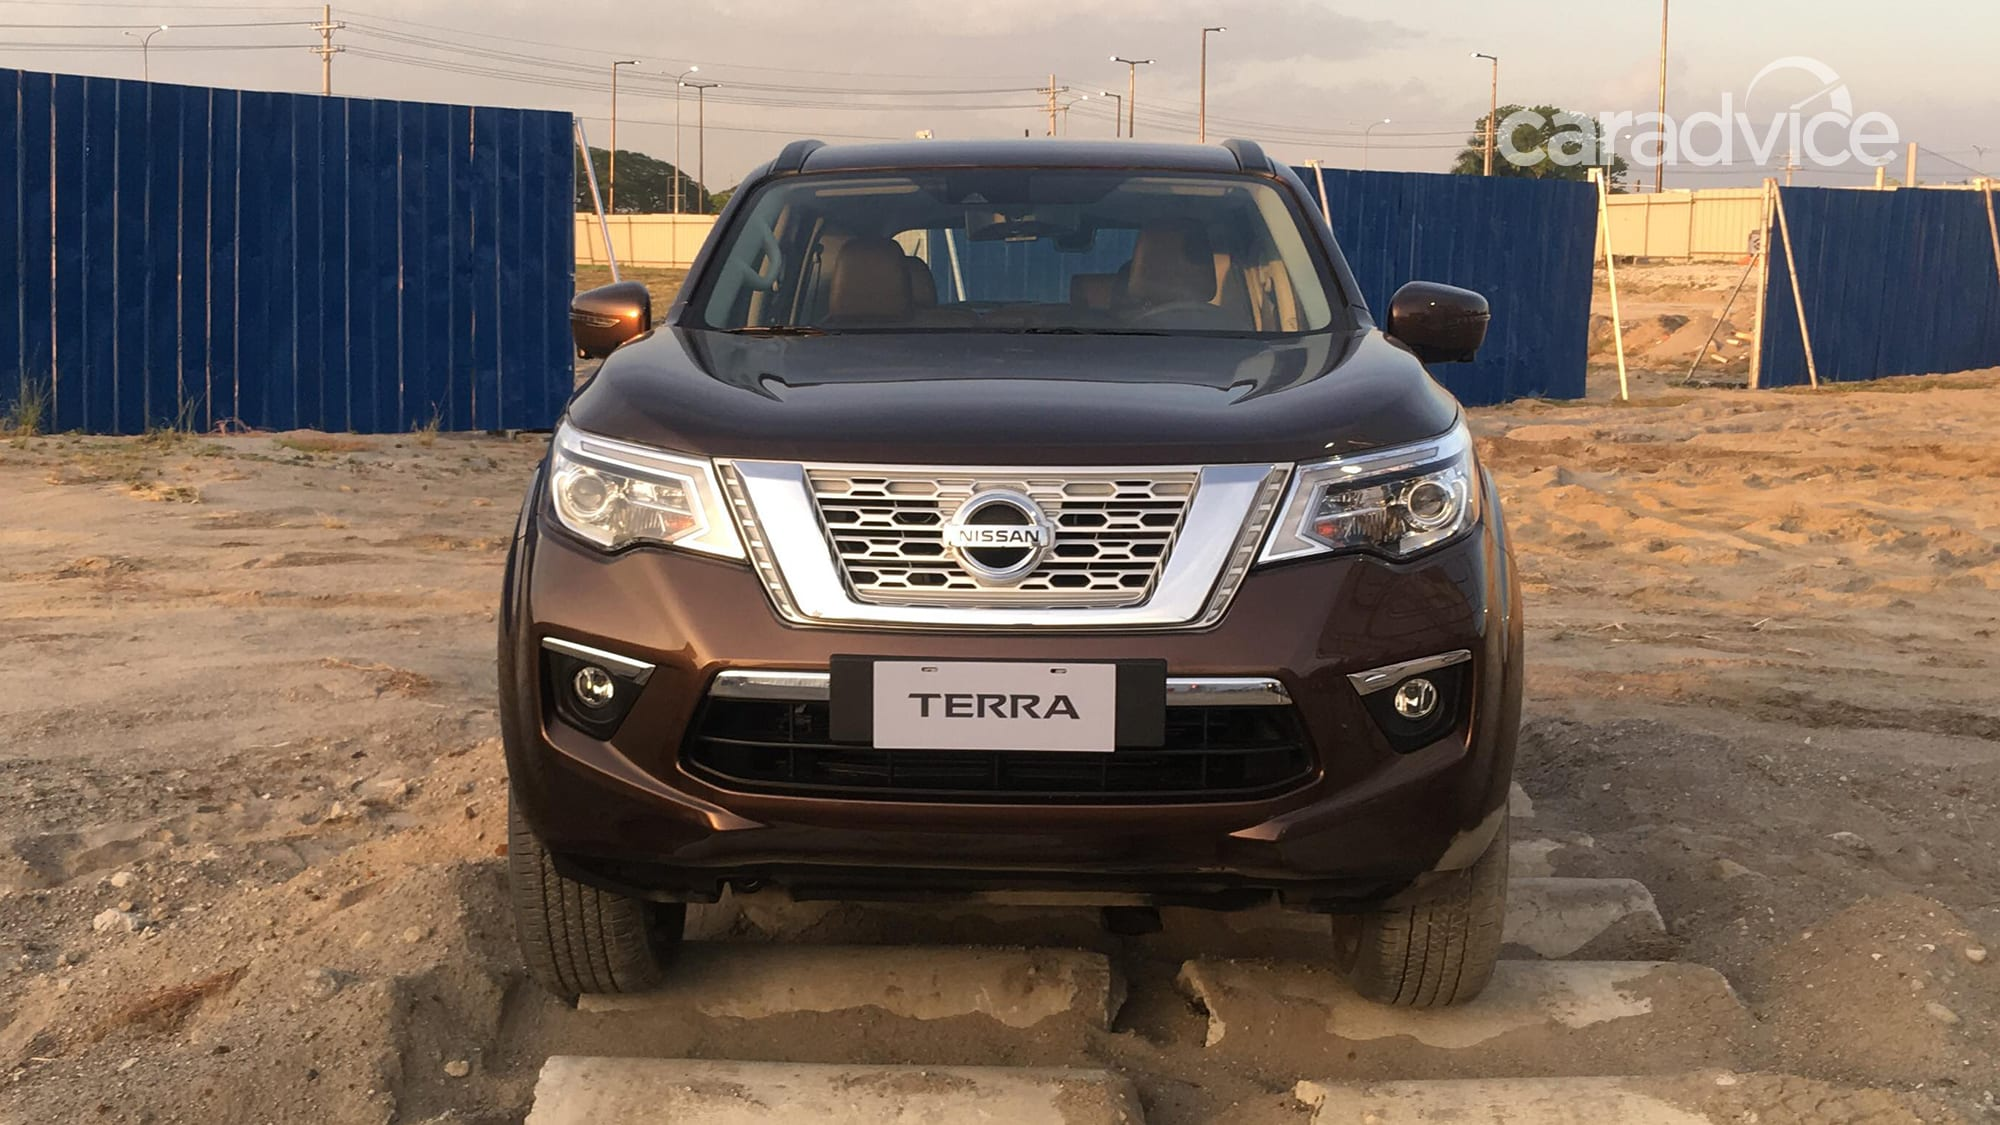 2018 nissan terra: diesel seven-seater launched for wider